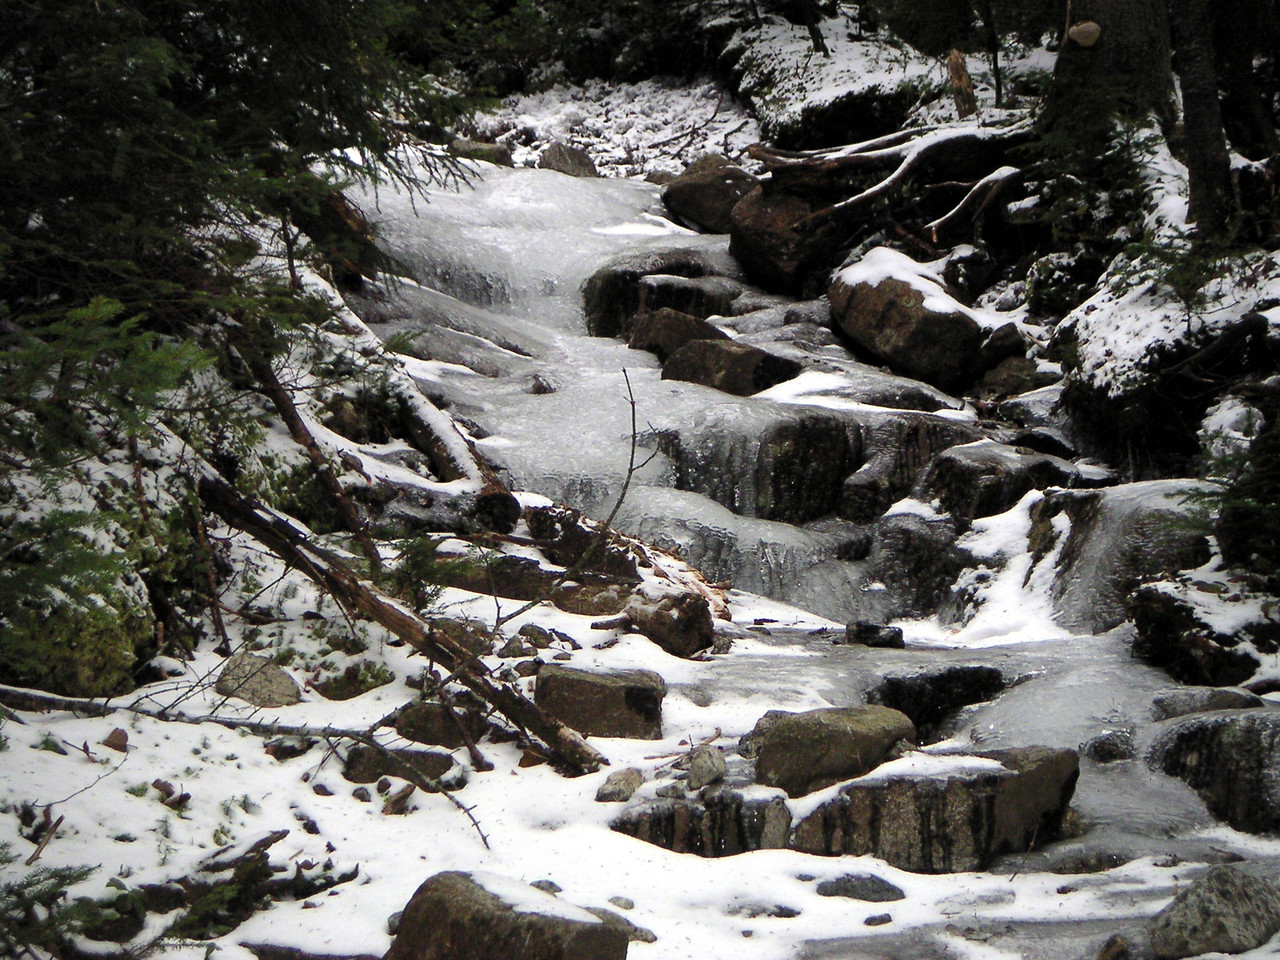 This is what the trail looked like